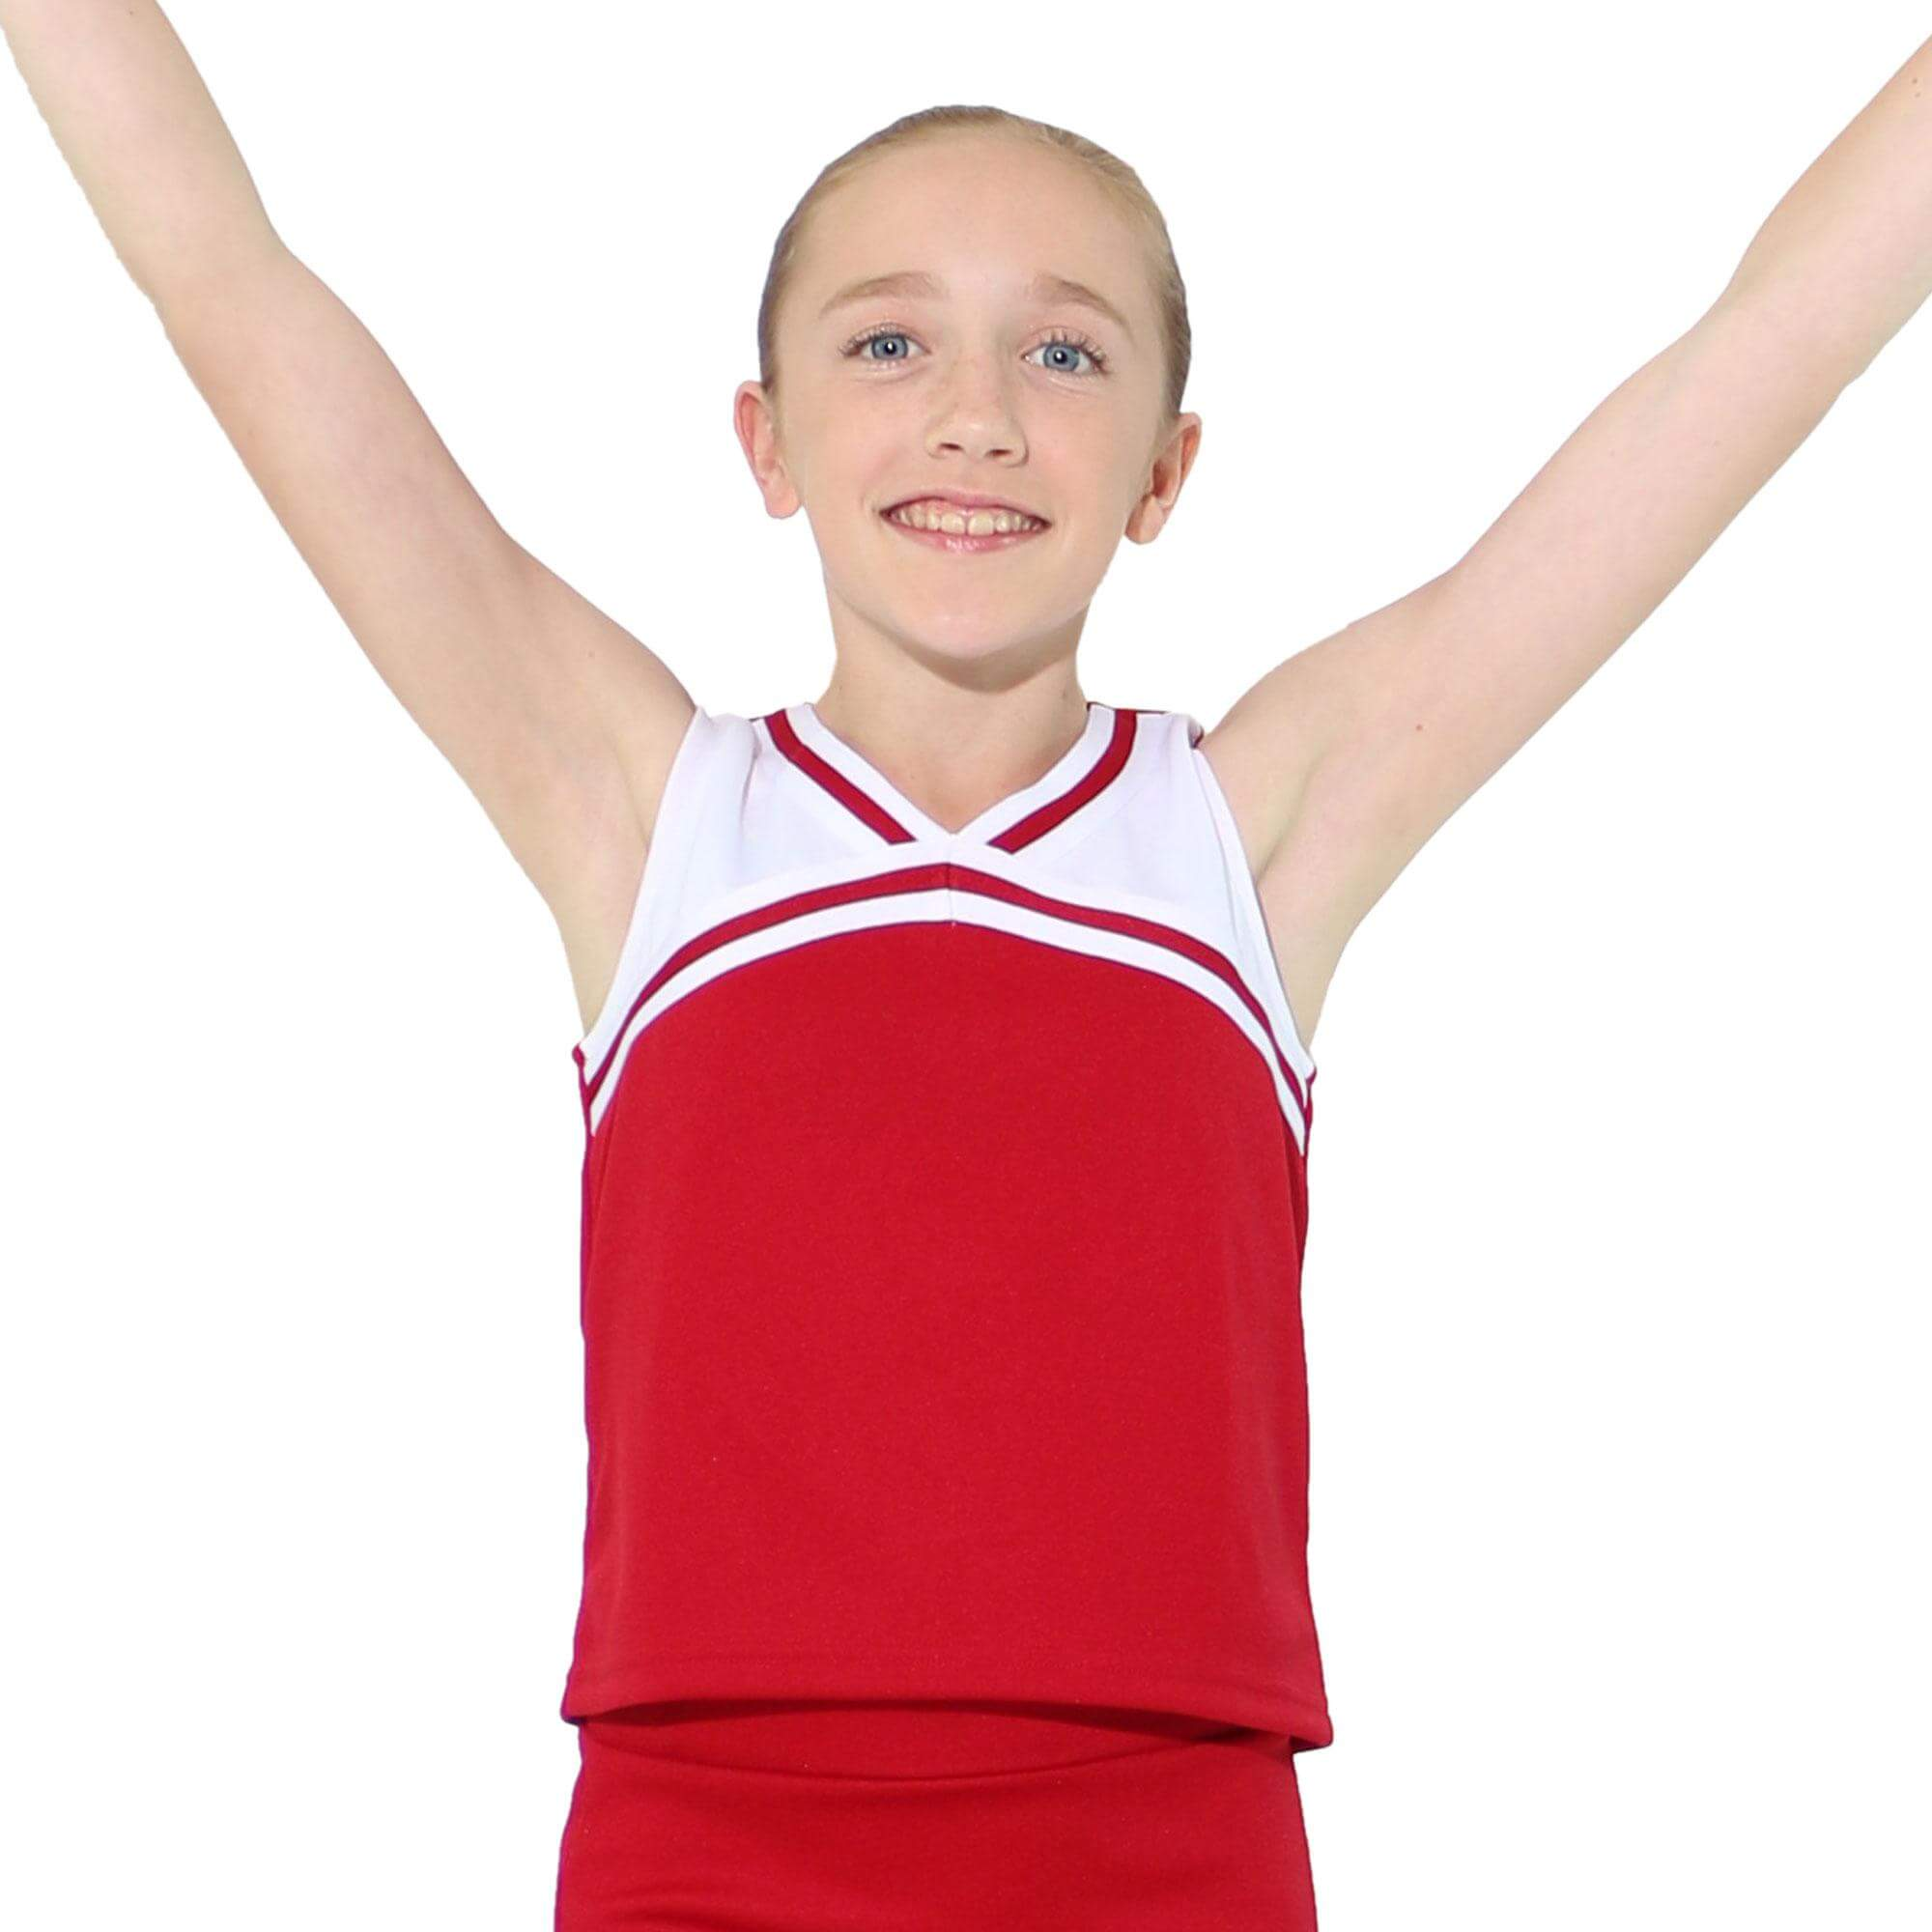 Danzcue Child Classic Cheerleaders Uniform Shell Top